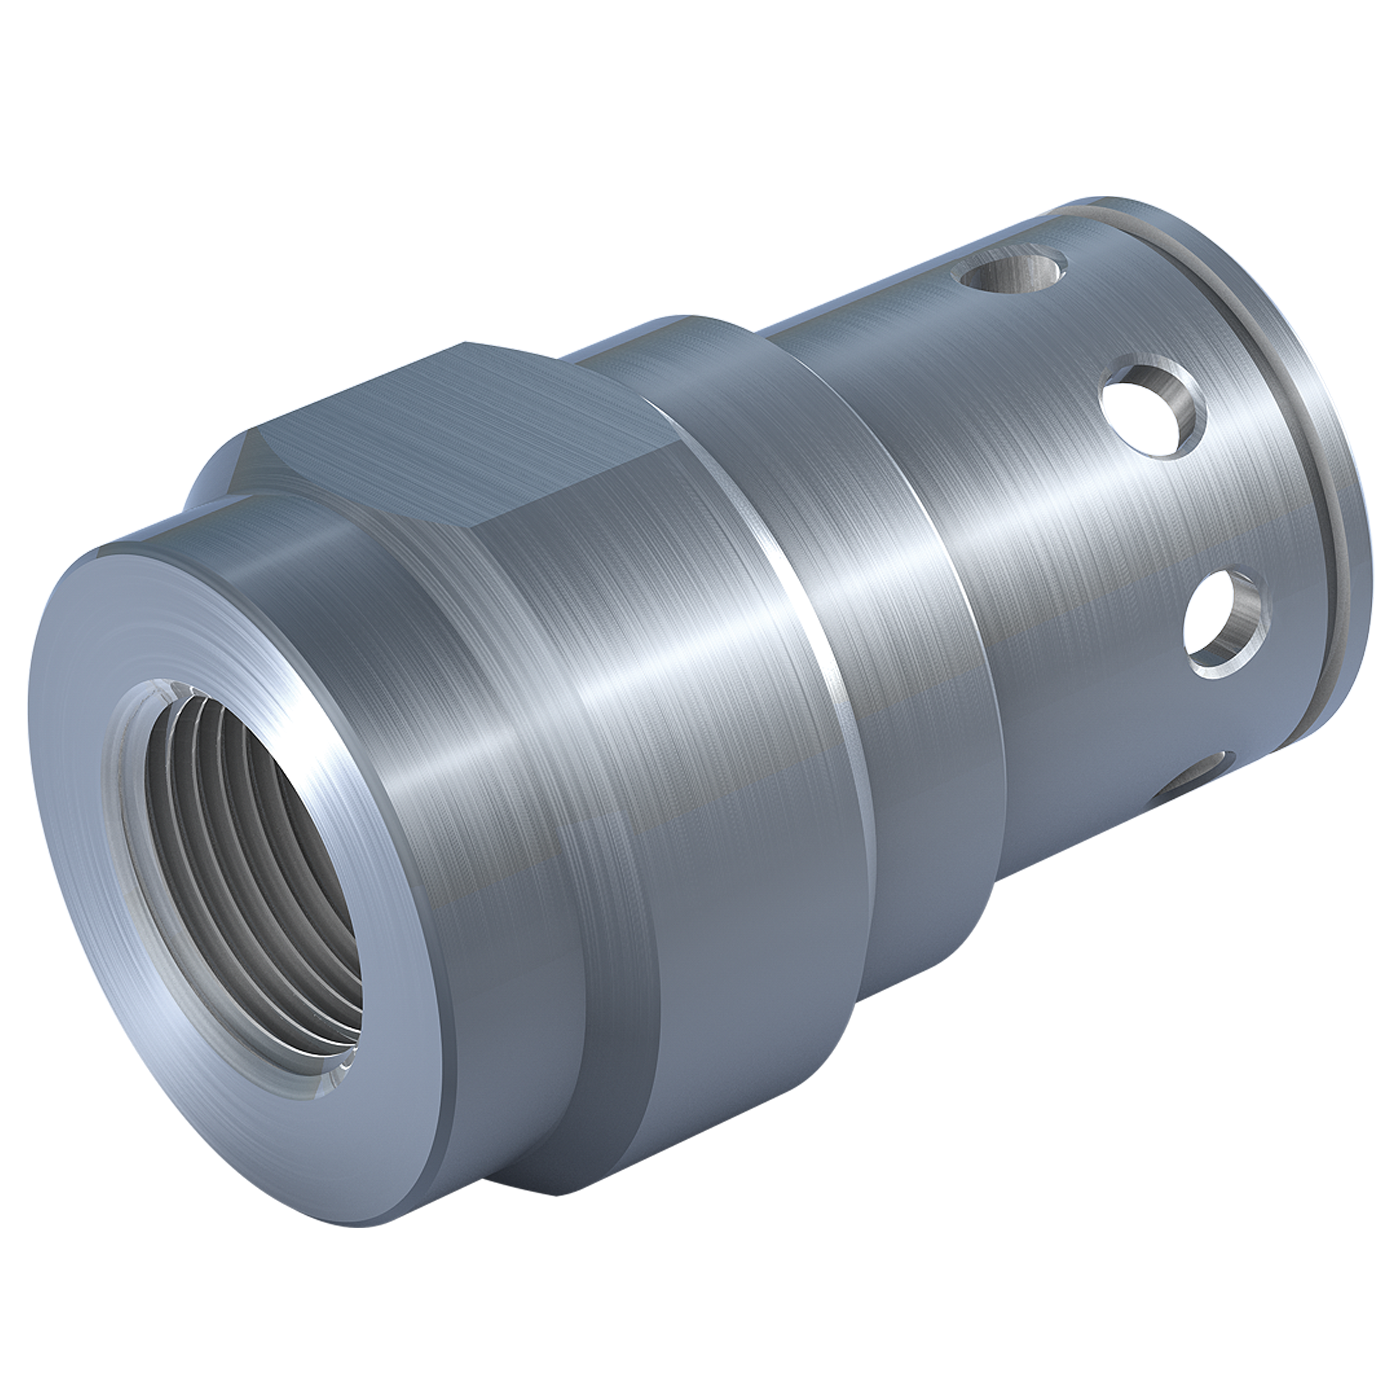 Threaded fitting with spanner surface